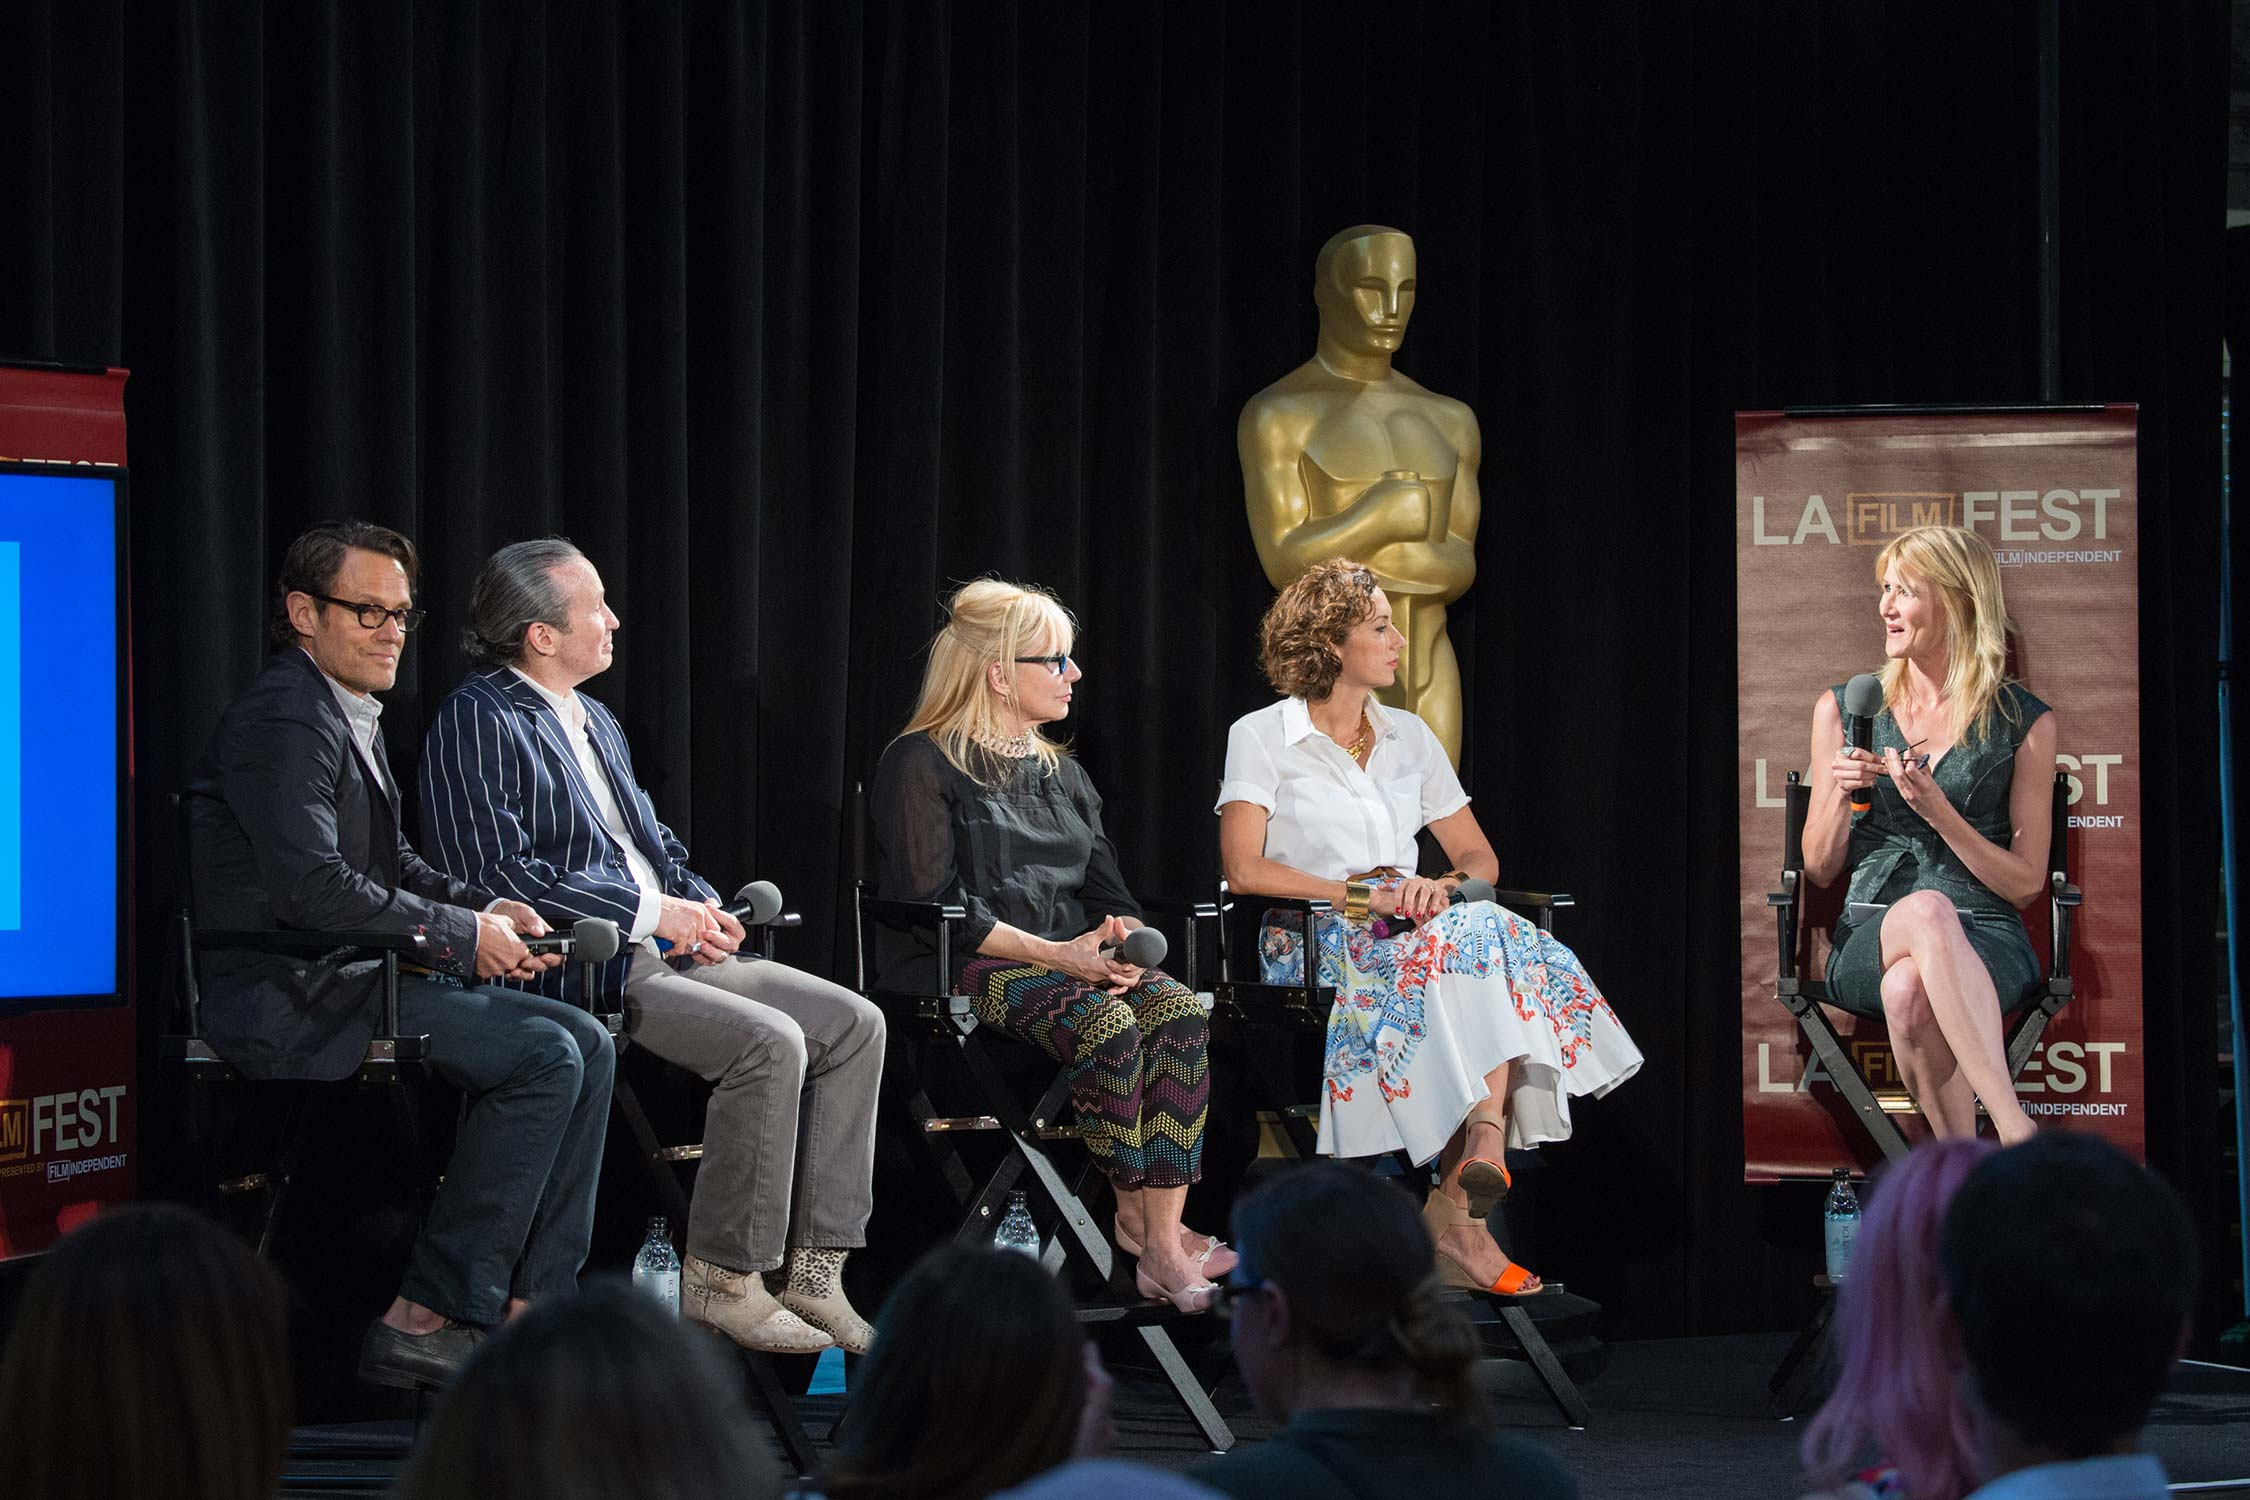 The panelists with moderator Laura Dern.